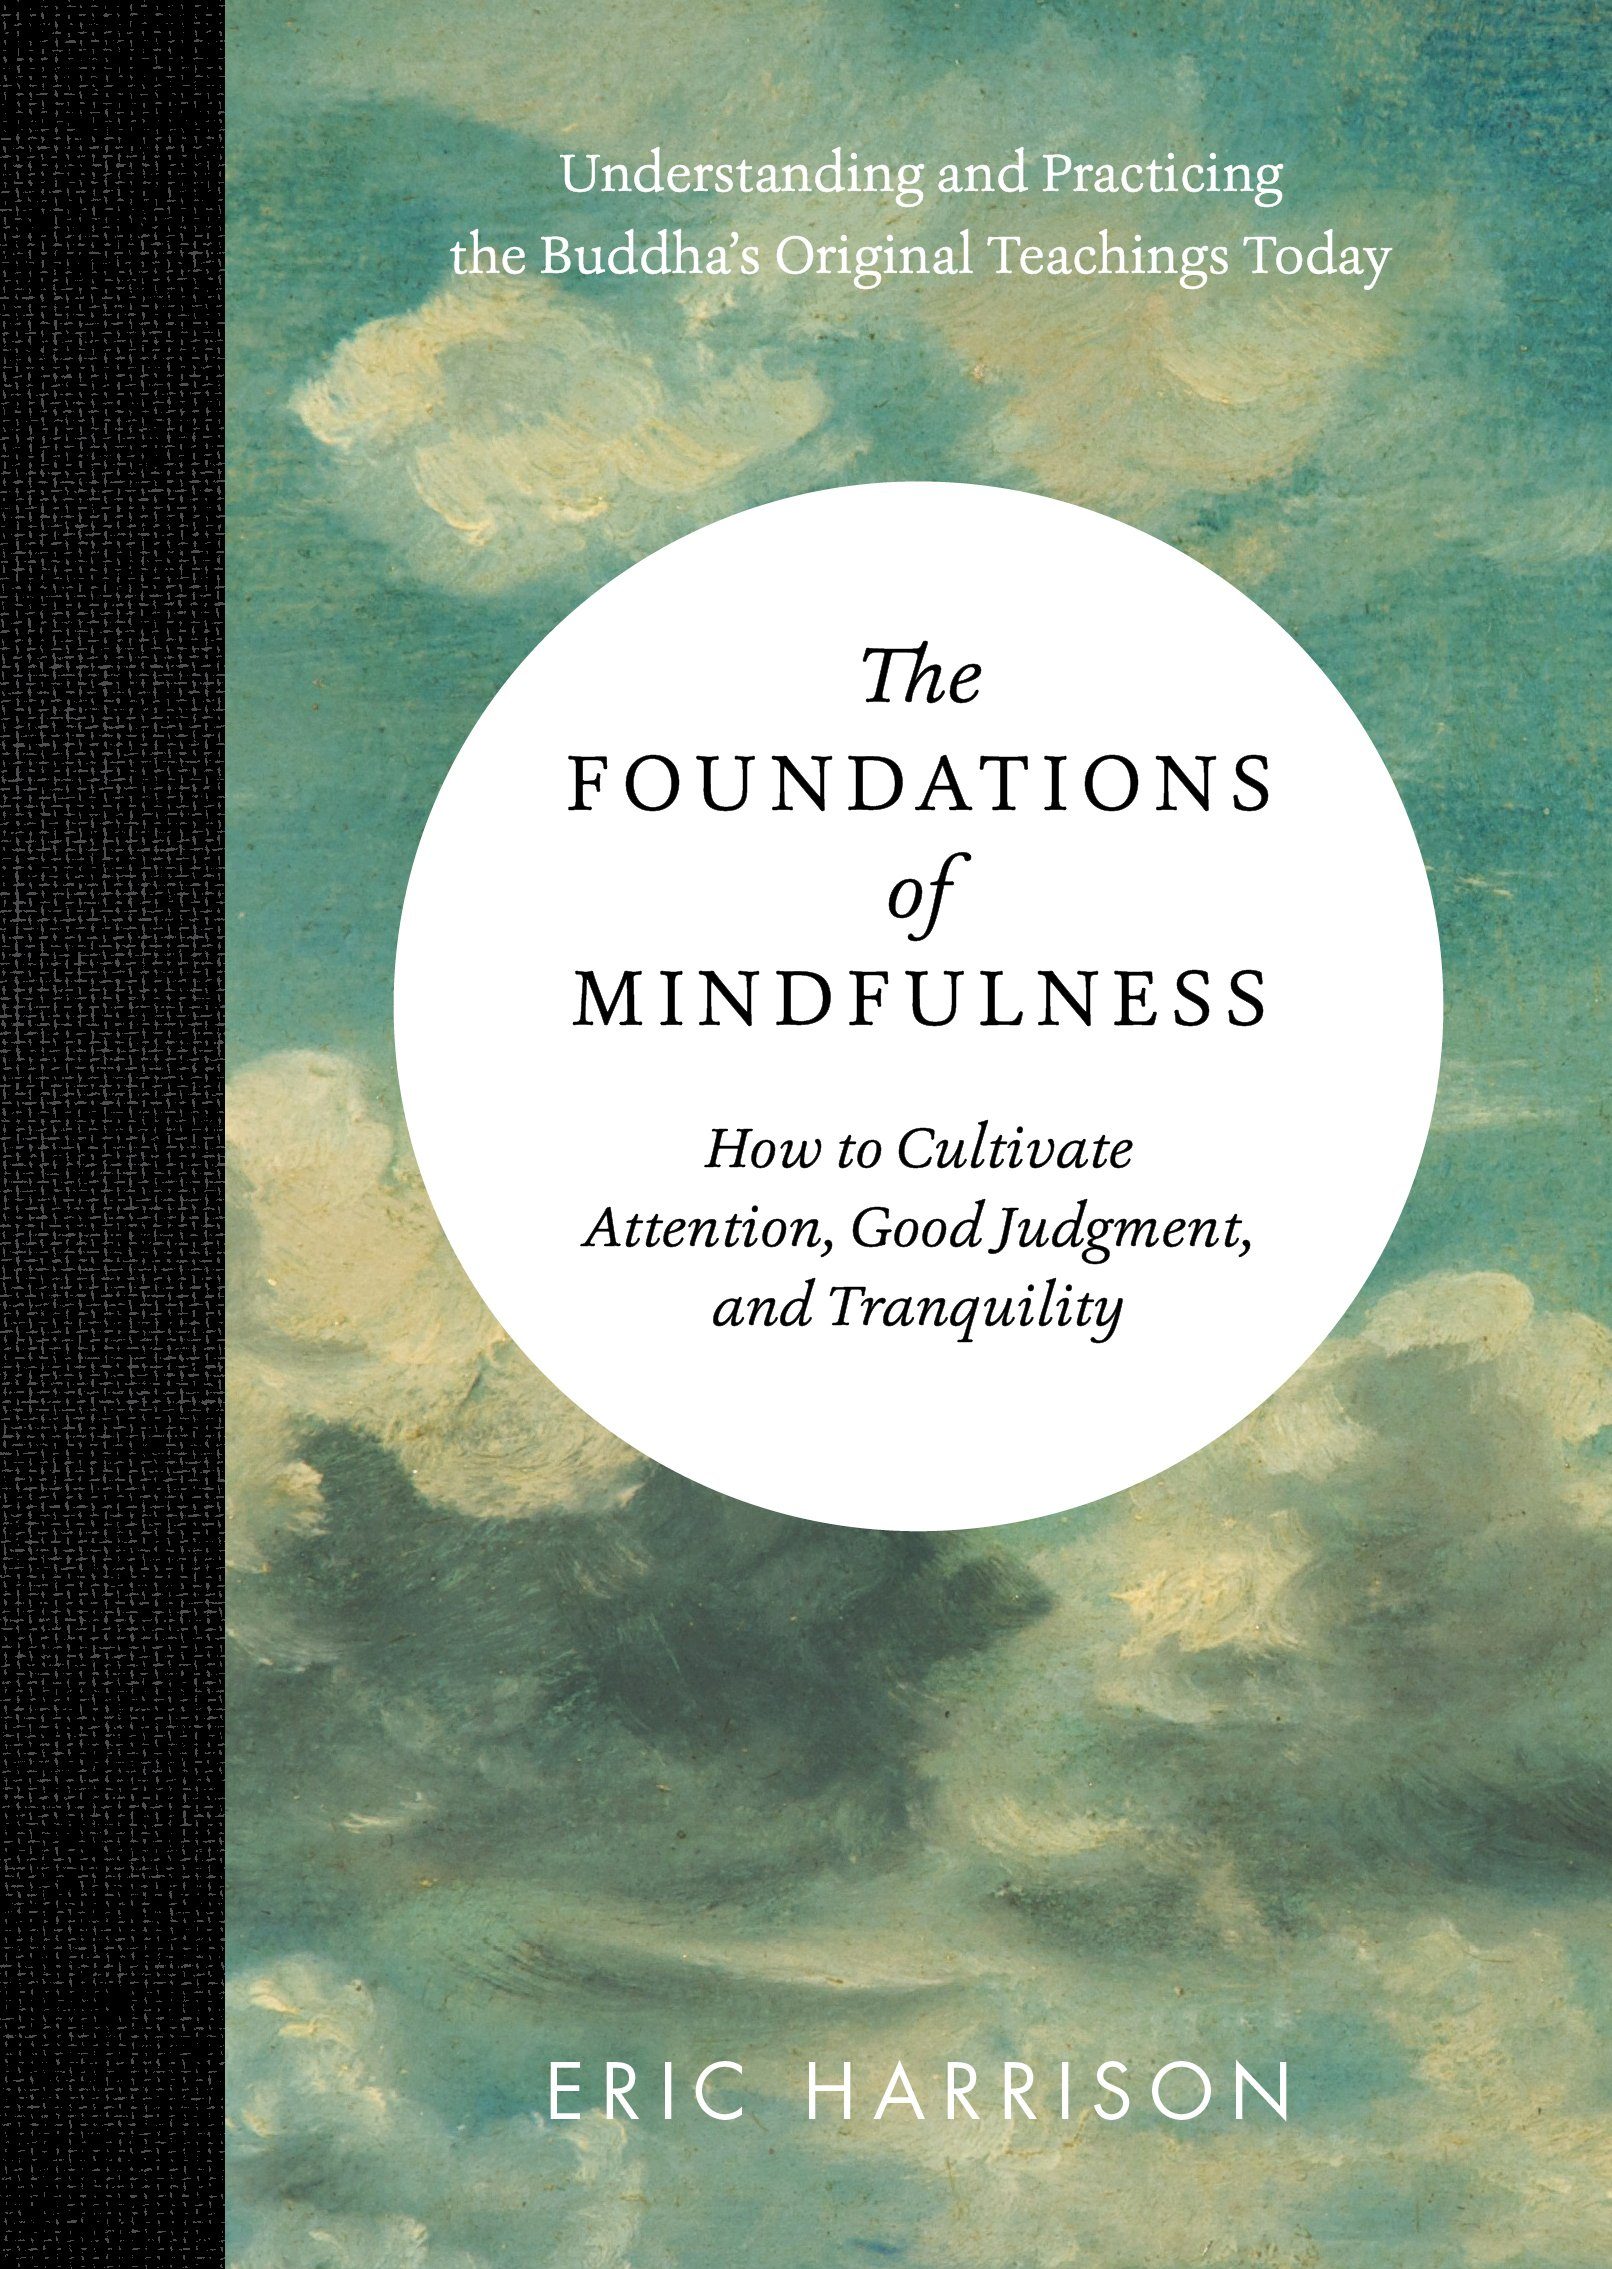 Download The Foundations of Mindfulness: How to Cultivate Attention, Good Judgment, and Tranquility ePub fb2 book